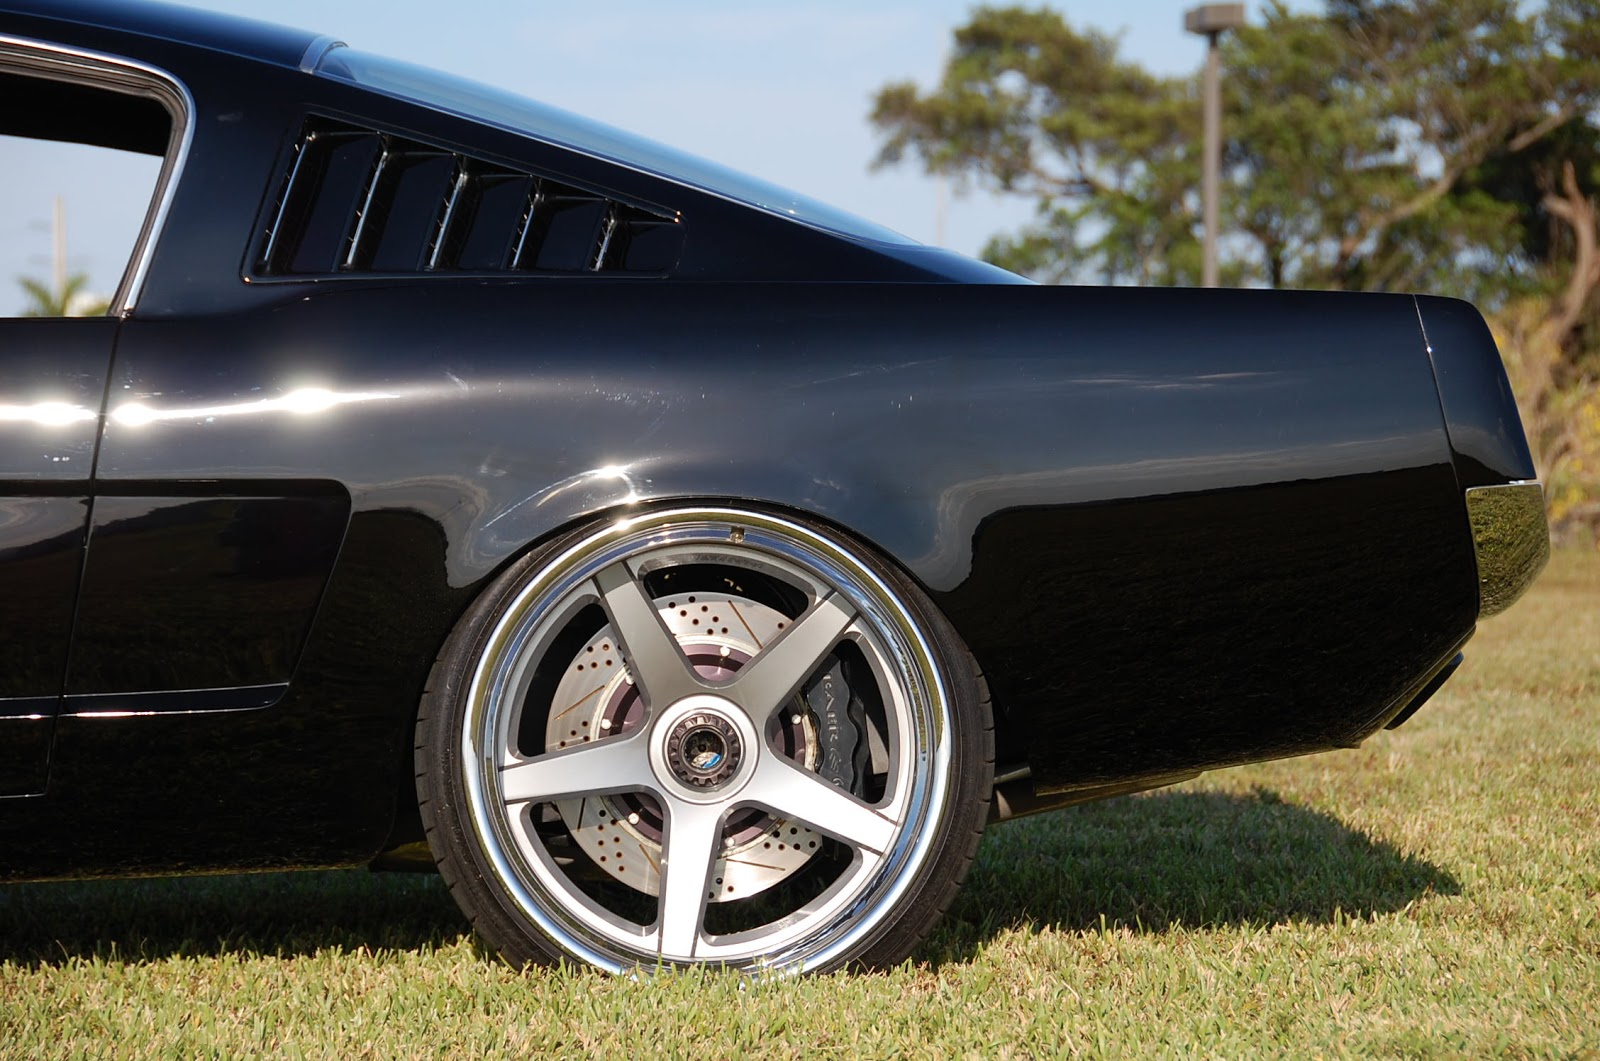 65 fastback ford mustang mustangs amp rods ford muscle cars for sale - For Sale By Private Seller Vin Vehicle Identification Number 5r09c138905 Year 1965 Make Ford Model Mustang Trim Fastback Body Type Coupe